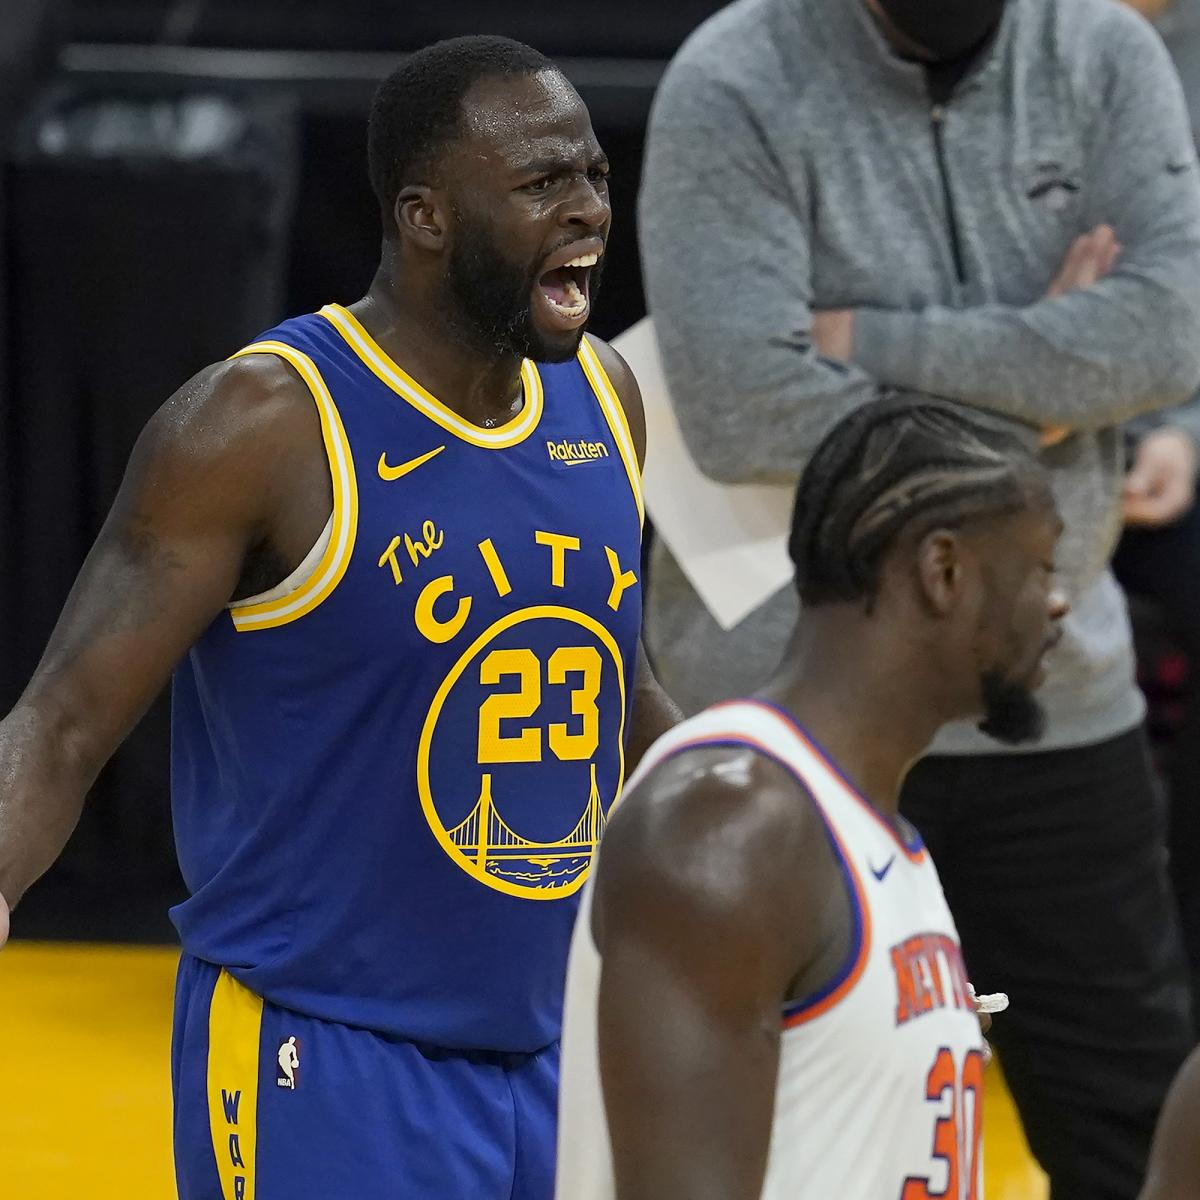 Video: Warriors' Draymond Green Ejected After Appearing to Yell at James Wiseman